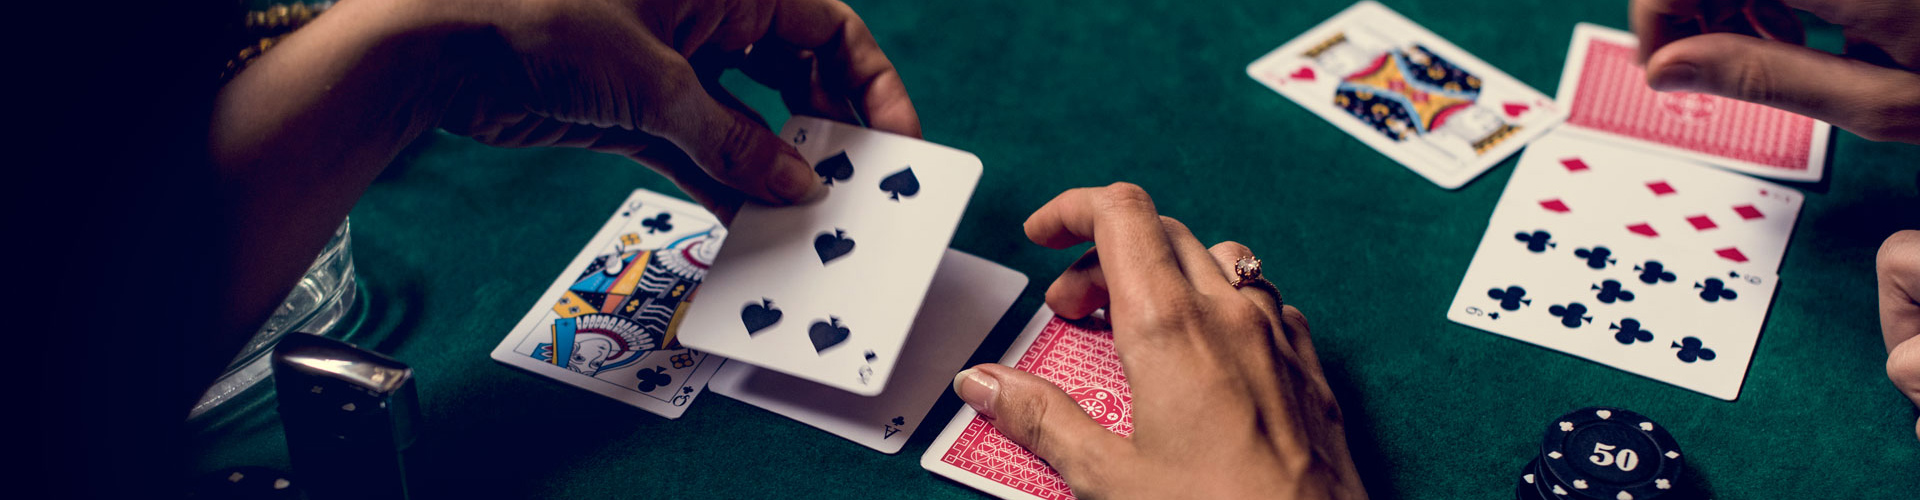 Casino game rentals, including card games, for Boston parties